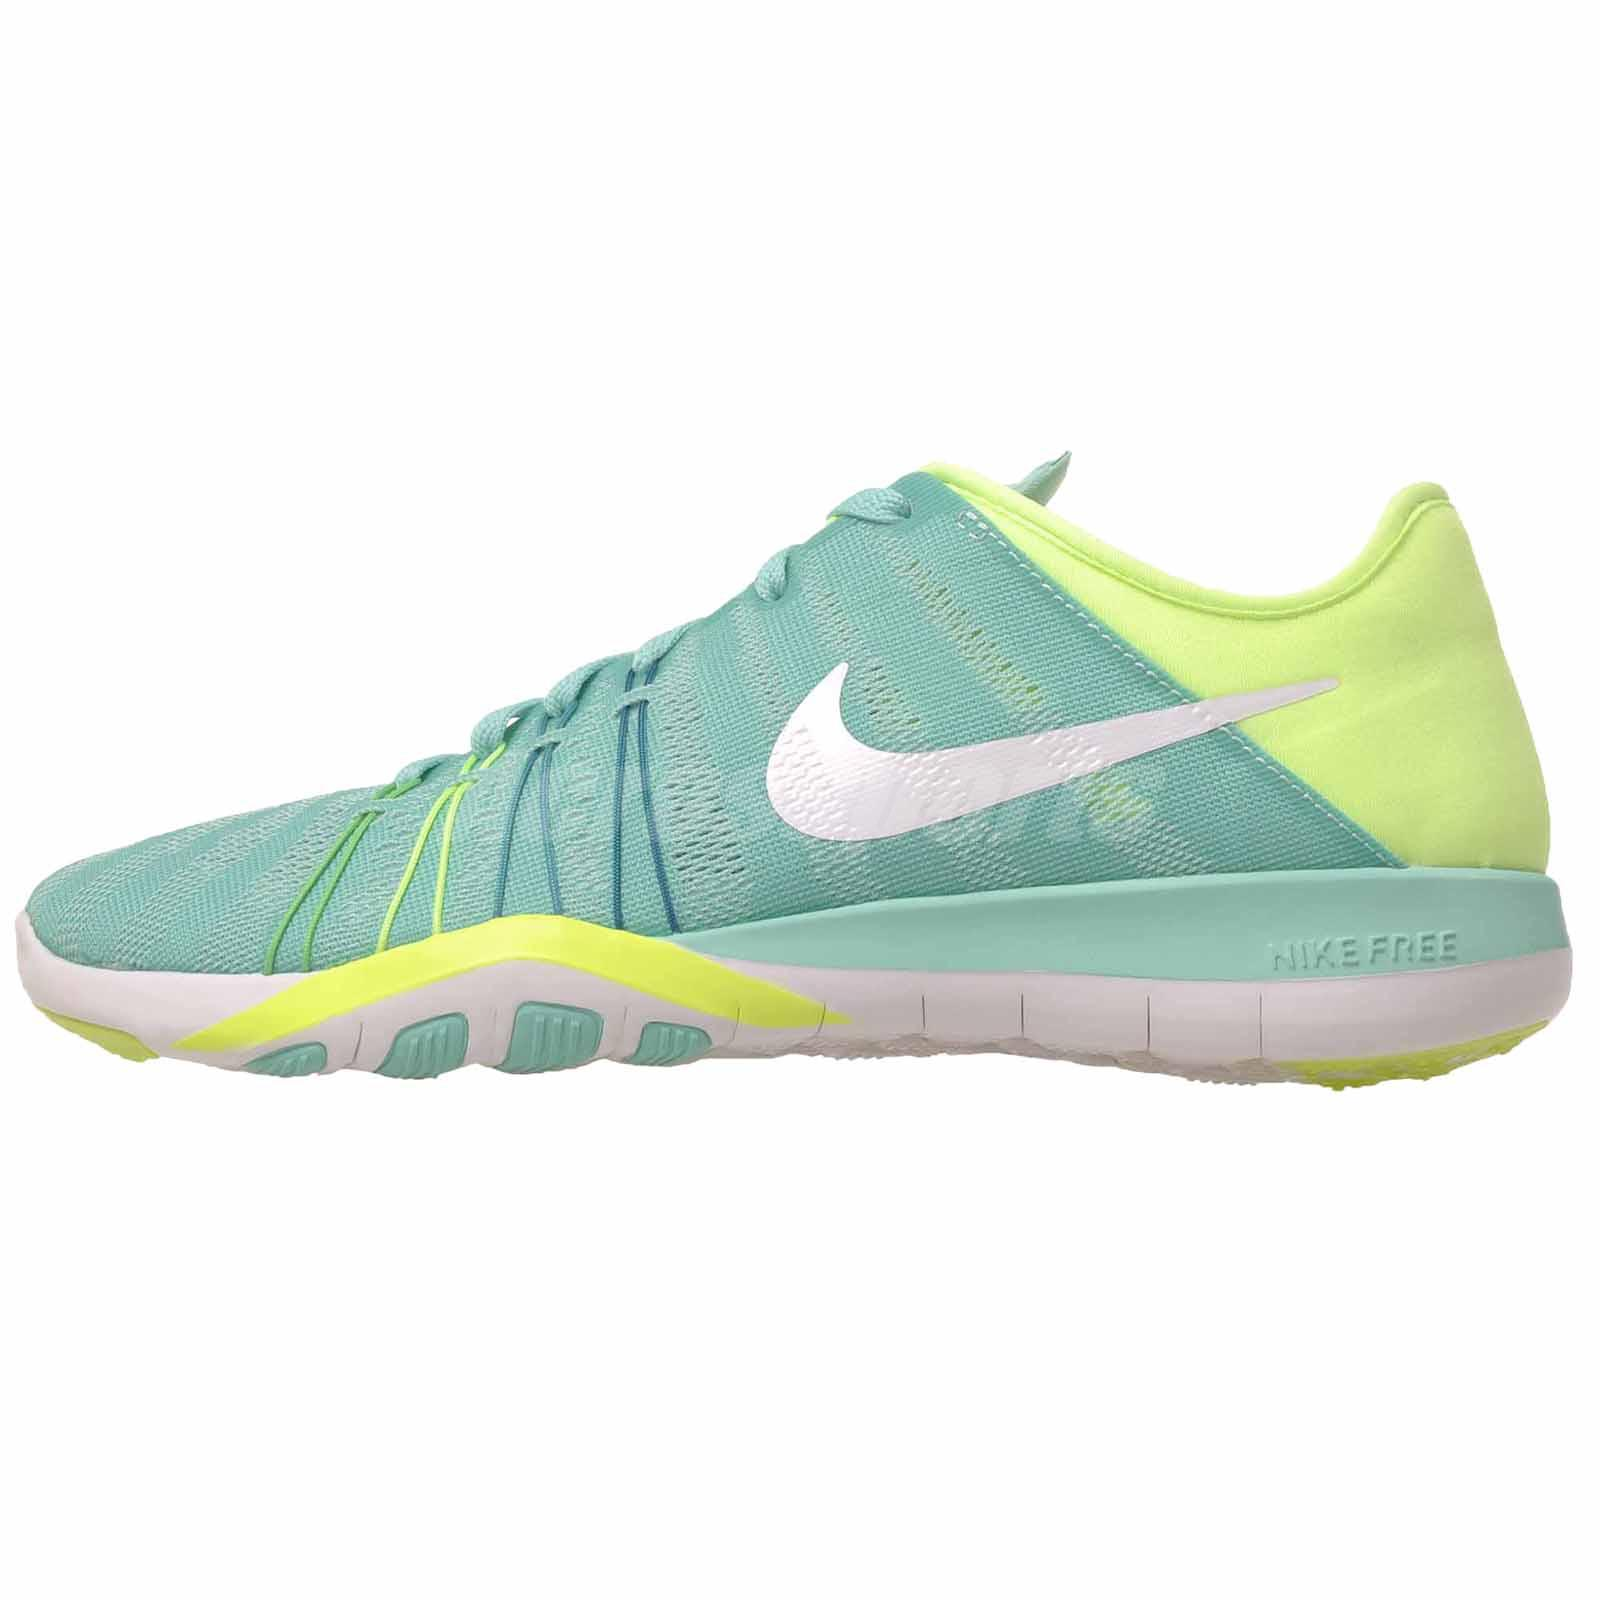 3a01a8b68687 Details about Nike Wmns Nike Free TR 6 Cross Training Womens Shoes Green  Turquoise 833413-300